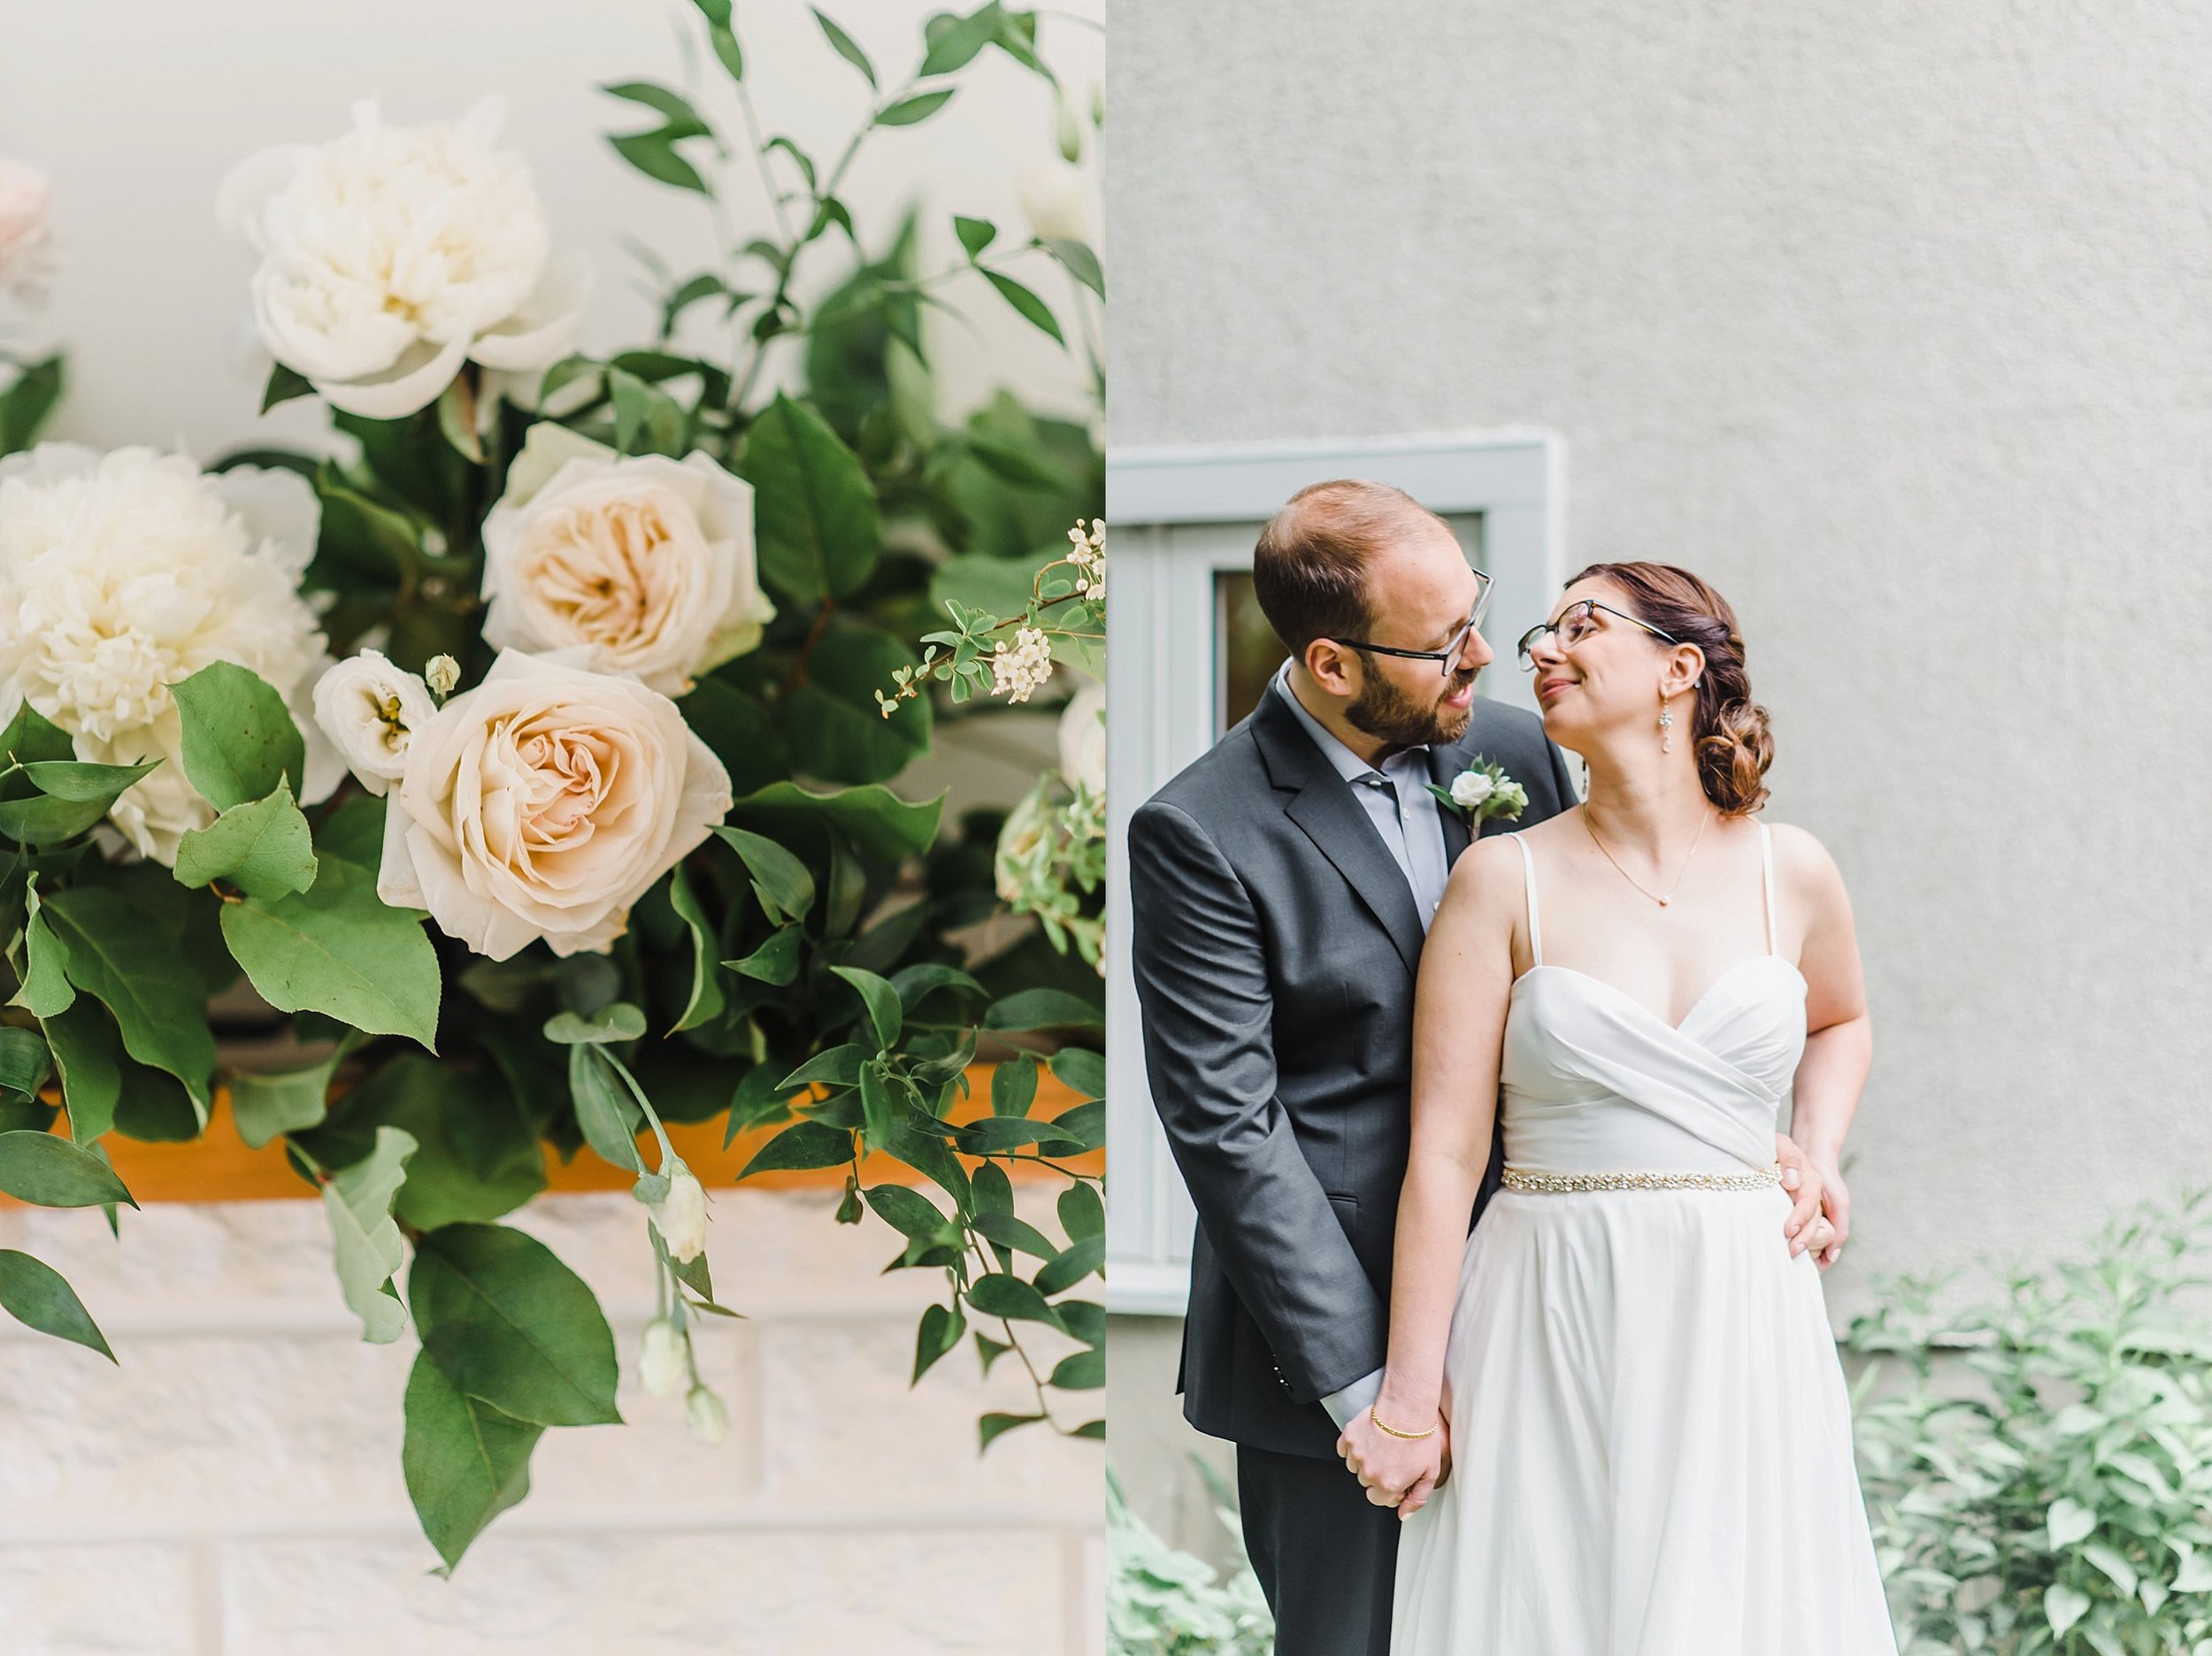 light airy indie fine art ottawa wedding photographer | Ali and Batoul Photography_1700.jpg